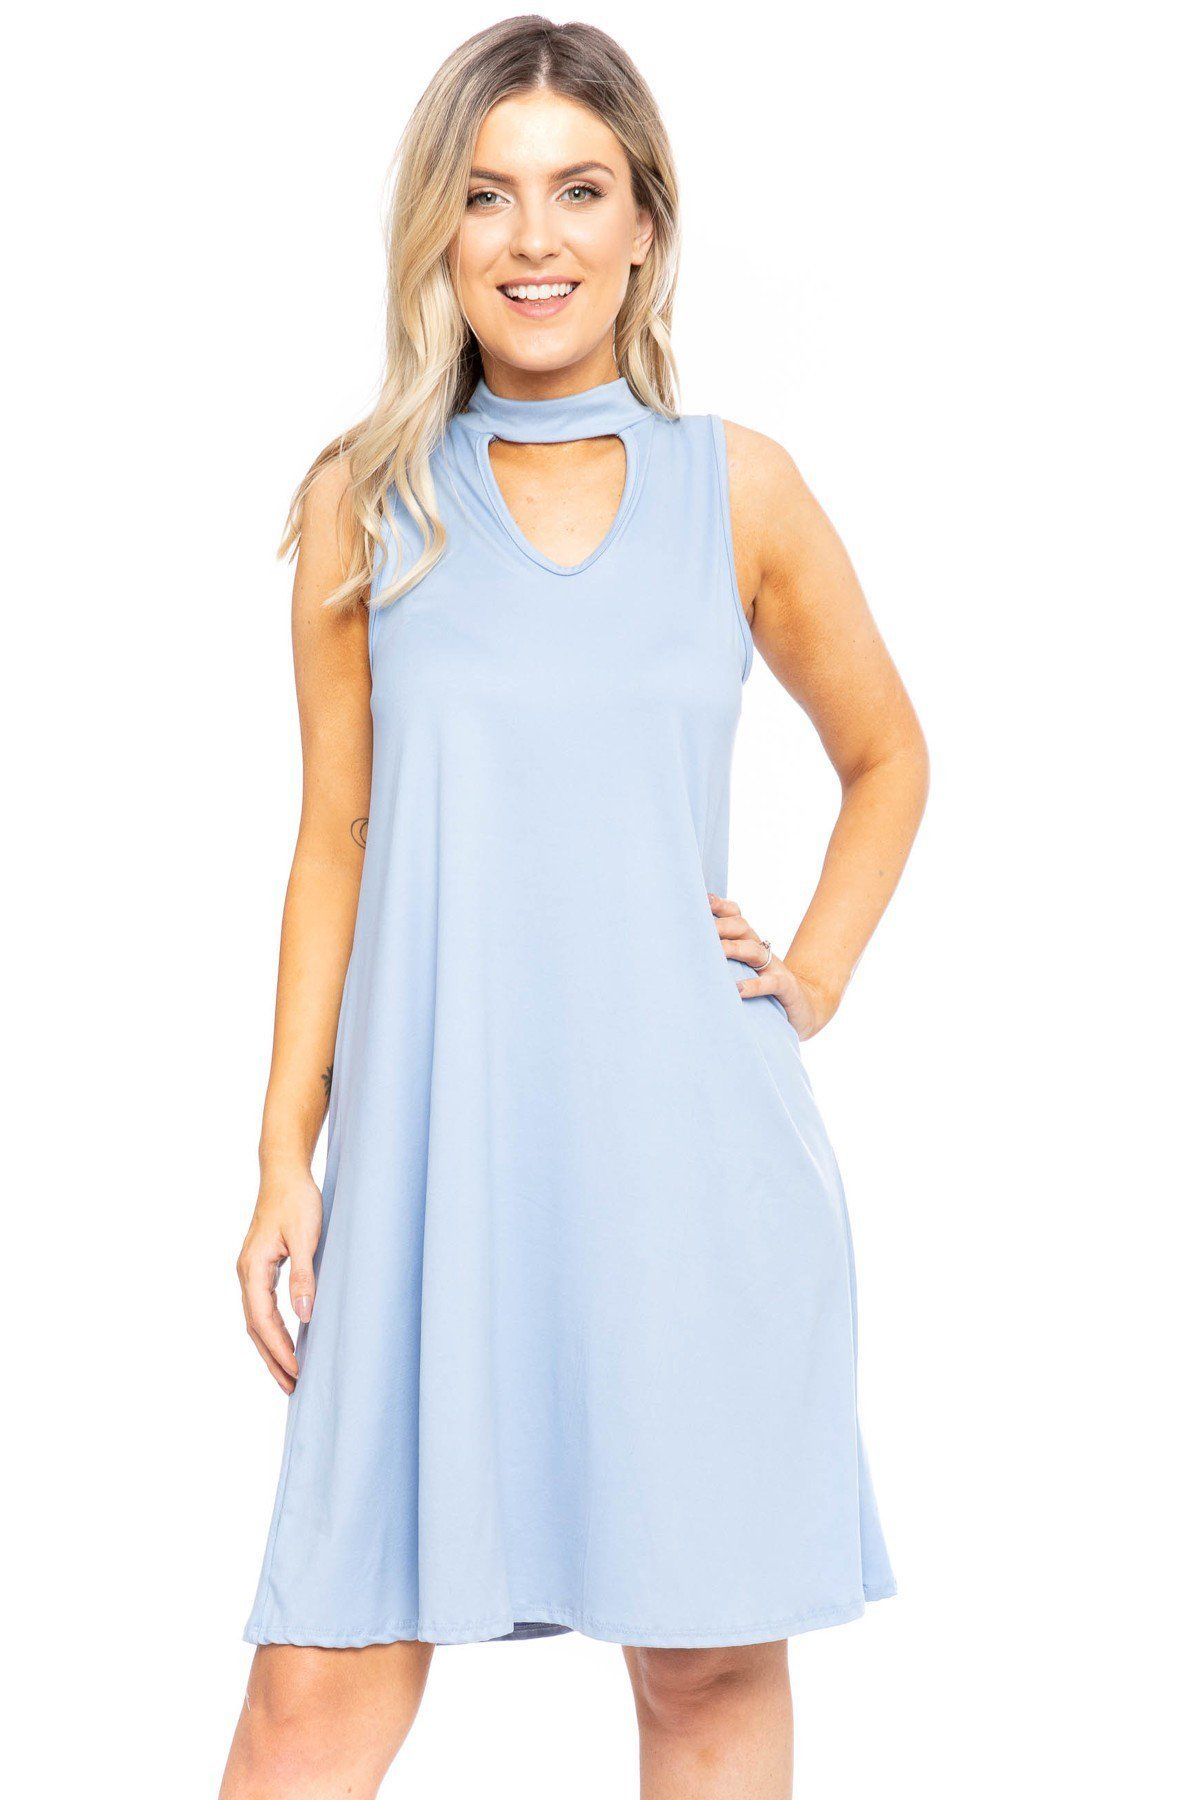 Sleeveless, Short A-line Dress